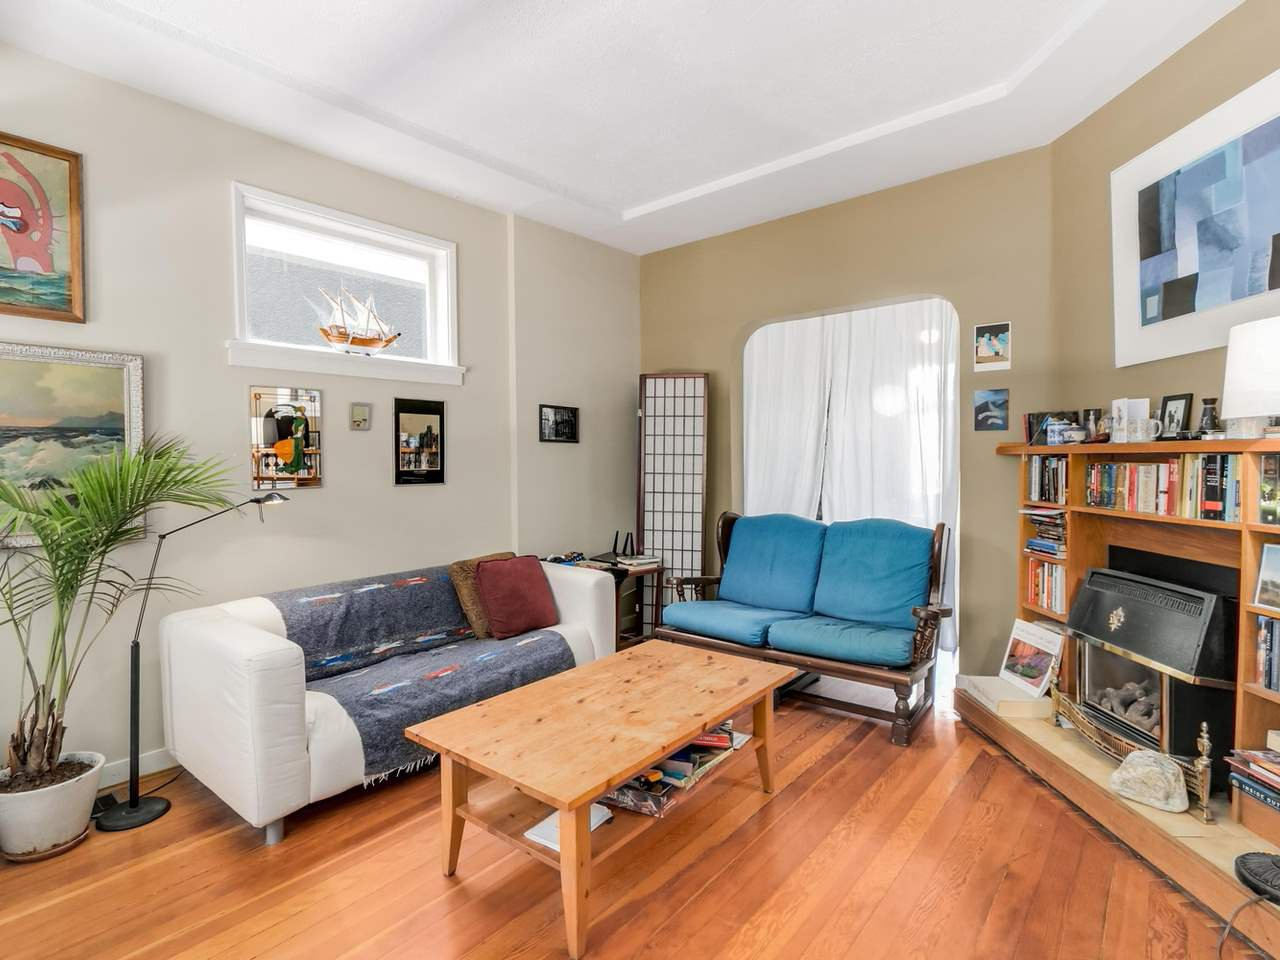 """Photo 3: Photos: 835 E 19TH Avenue in Vancouver: Fraser VE House for sale in """"CEDAR COTTAGE"""" (Vancouver East)  : MLS®# R2071745"""